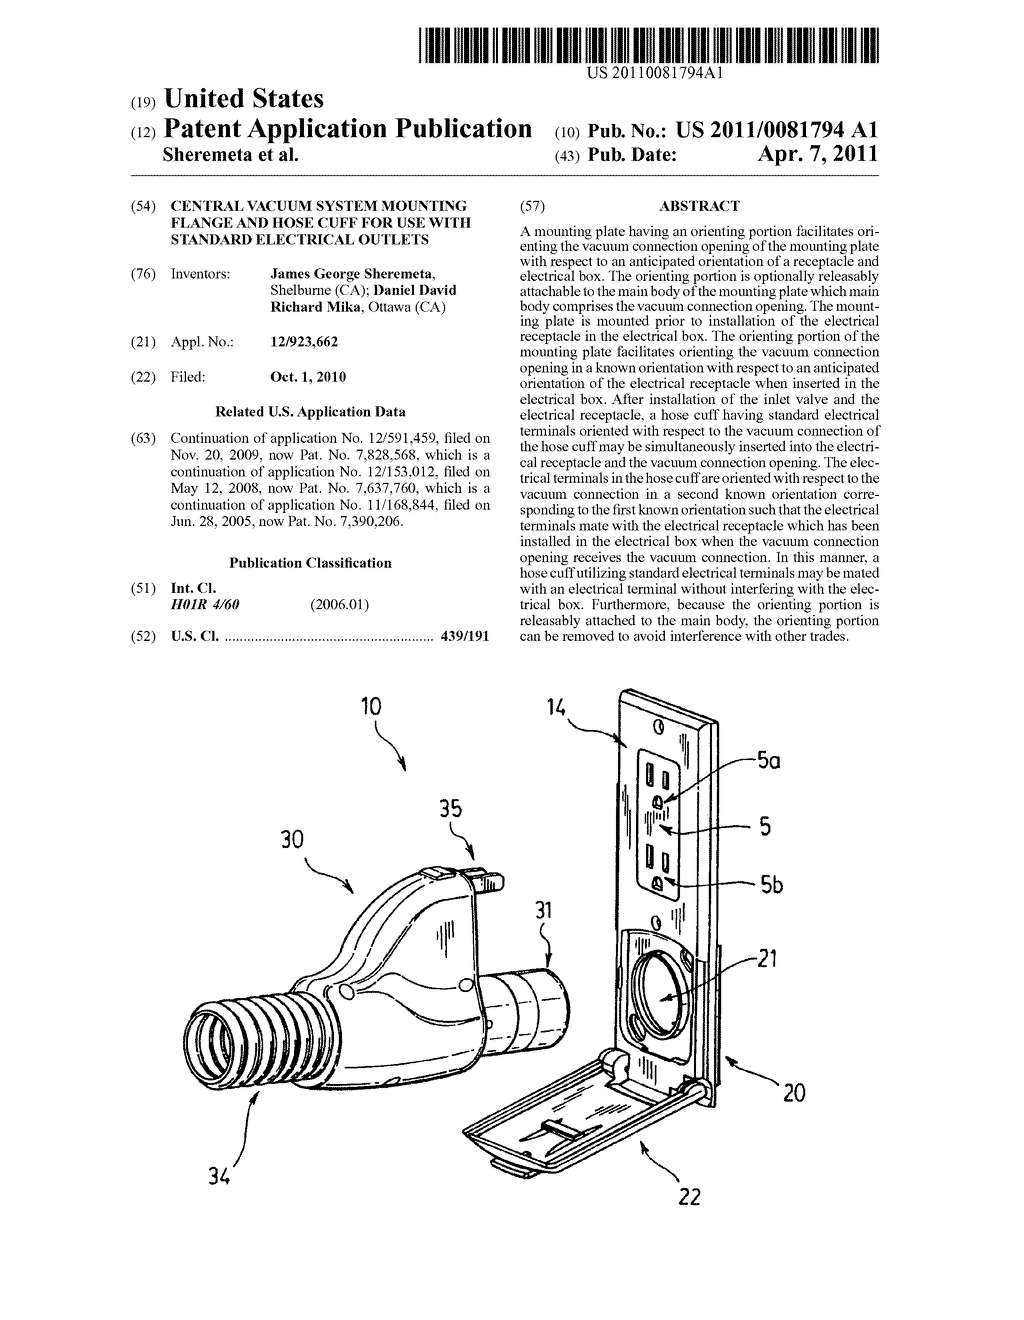 Central vacuum system mounting flange and hose cuff for use with standard  Electrical outlets - diagram, schematic, and image 01